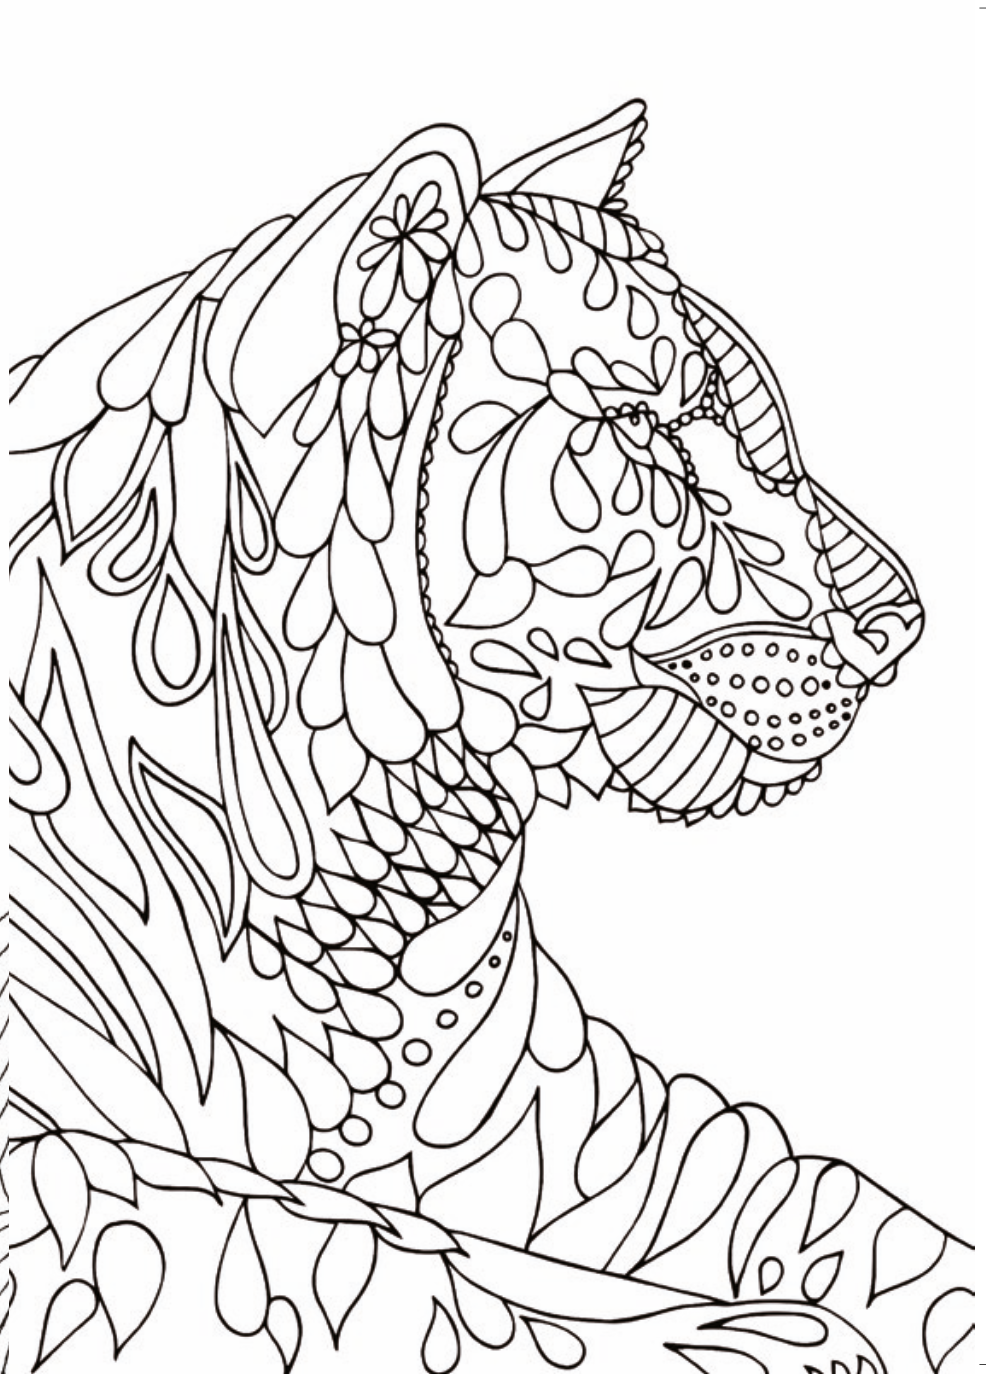 Mindfulness Coloring Pages at GetDrawings.com | Free for ...